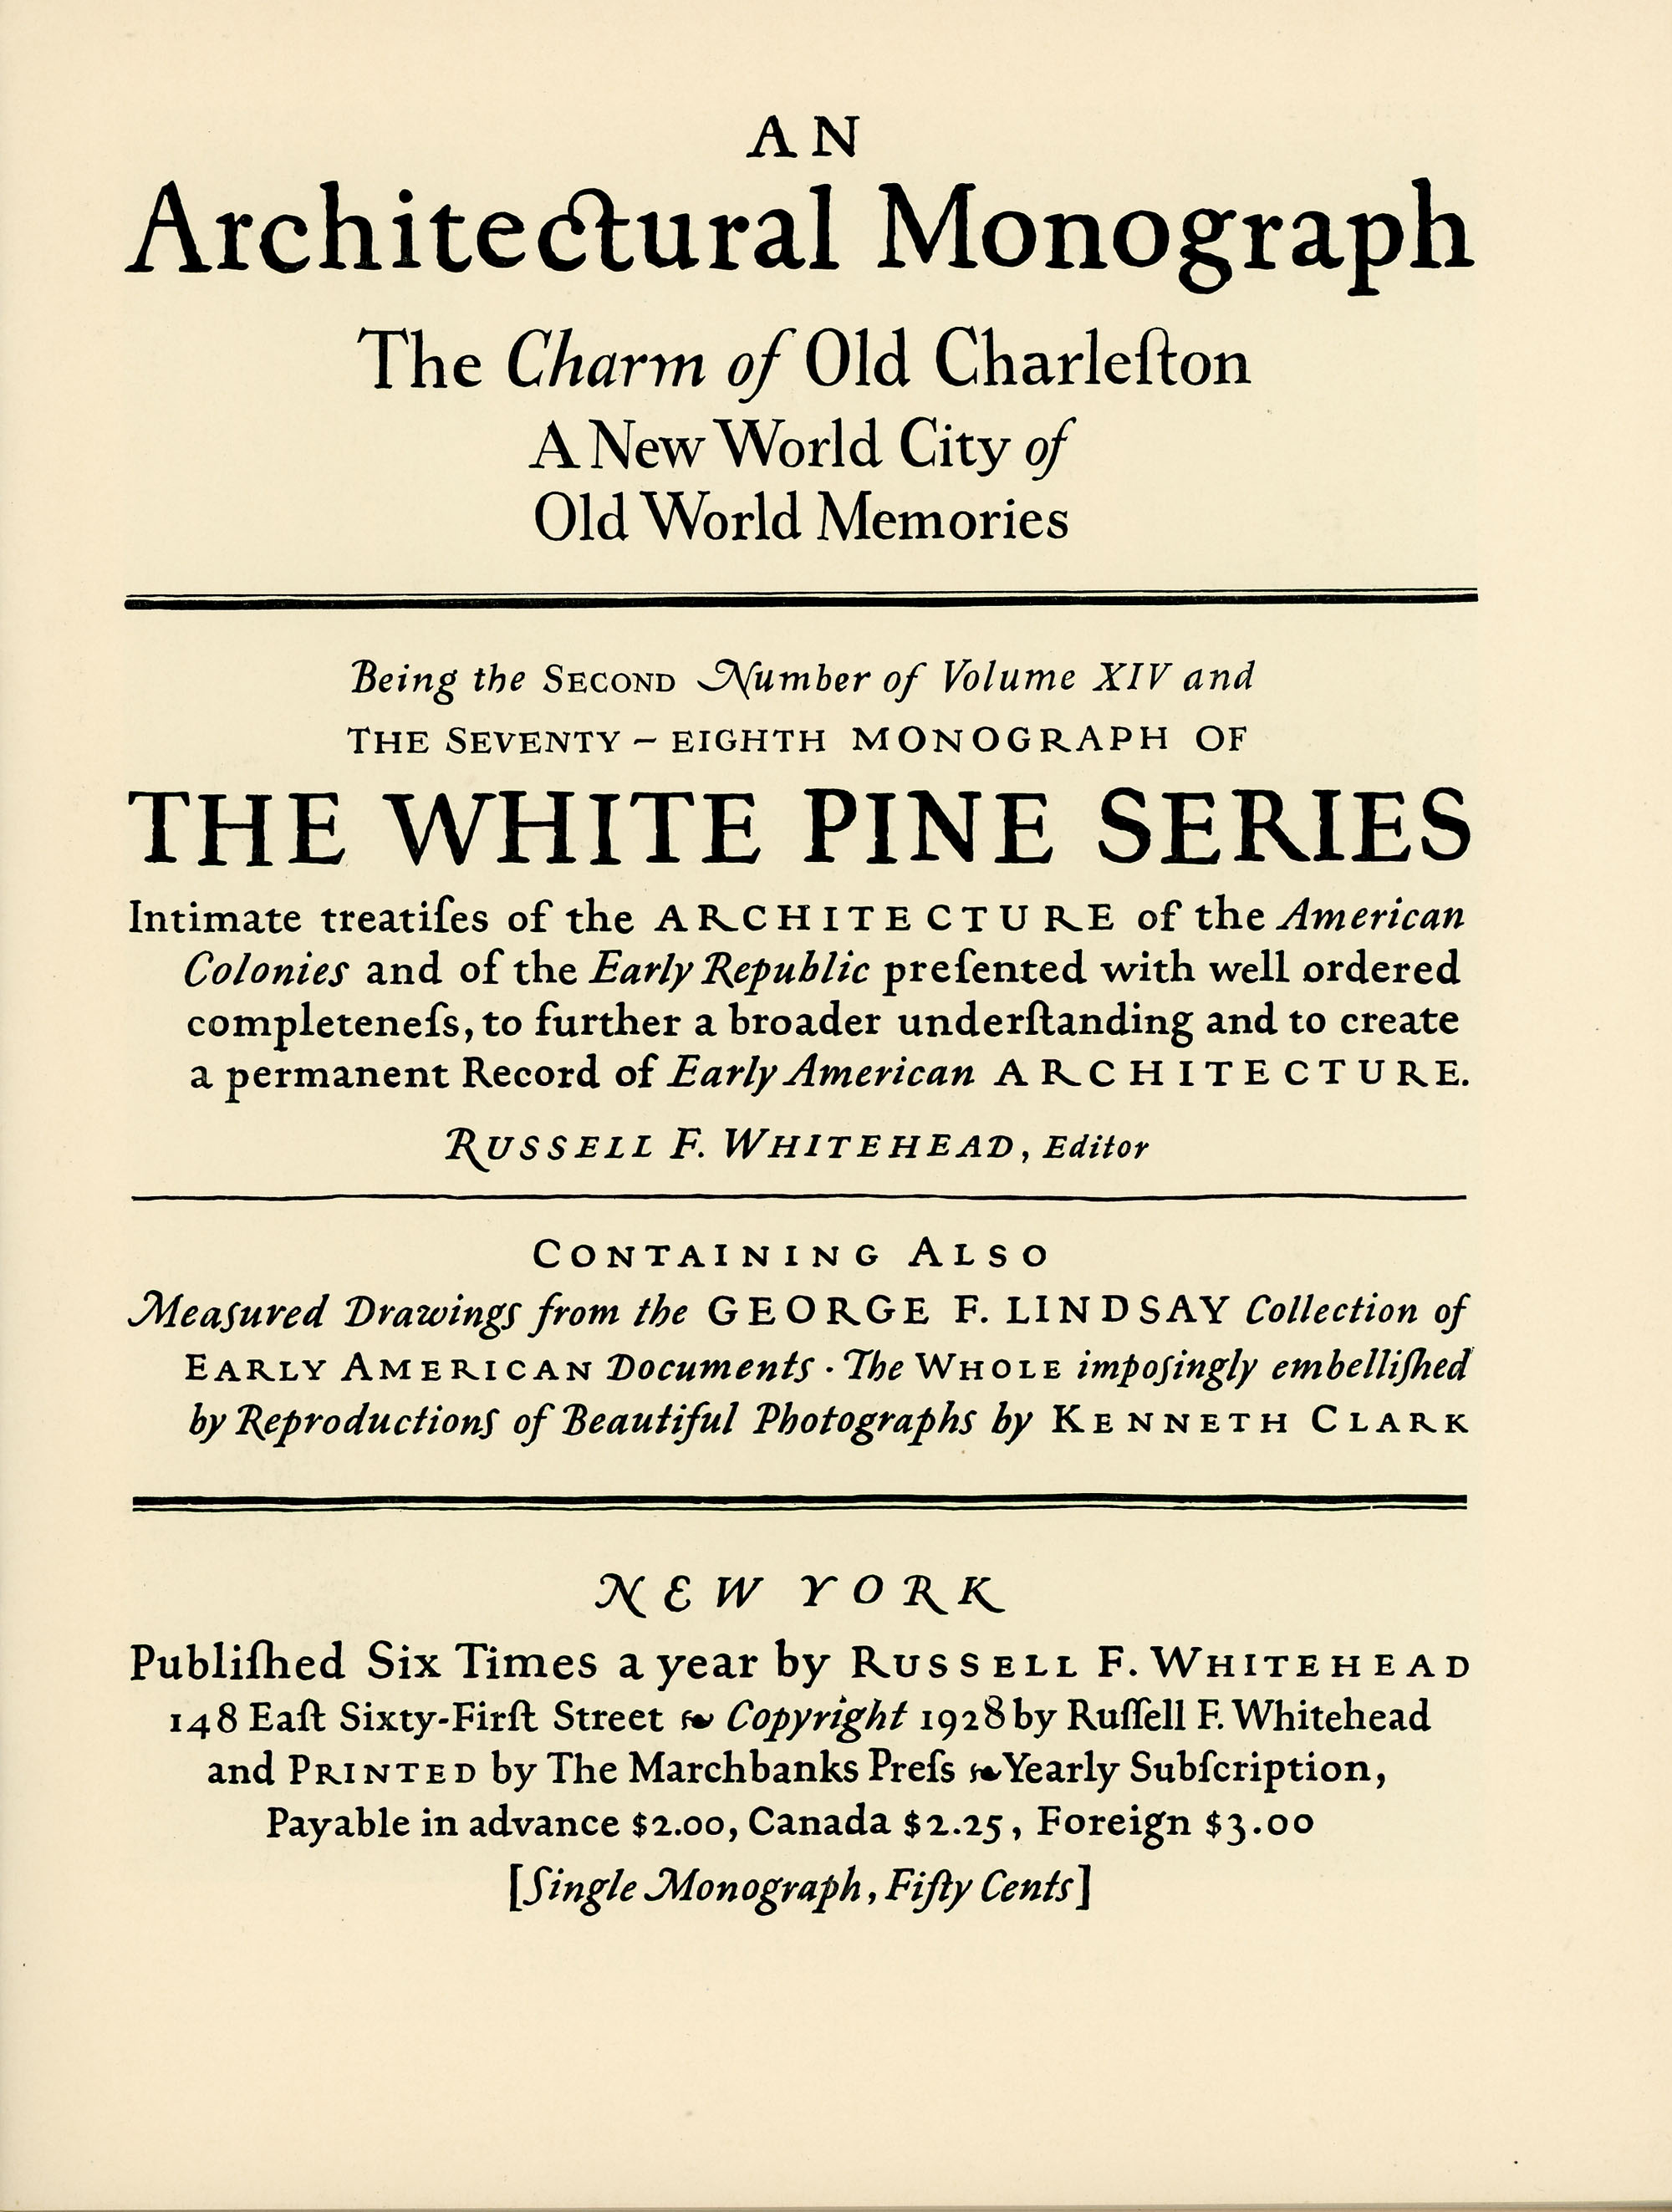 The Charm of Old Charleston: Title Page